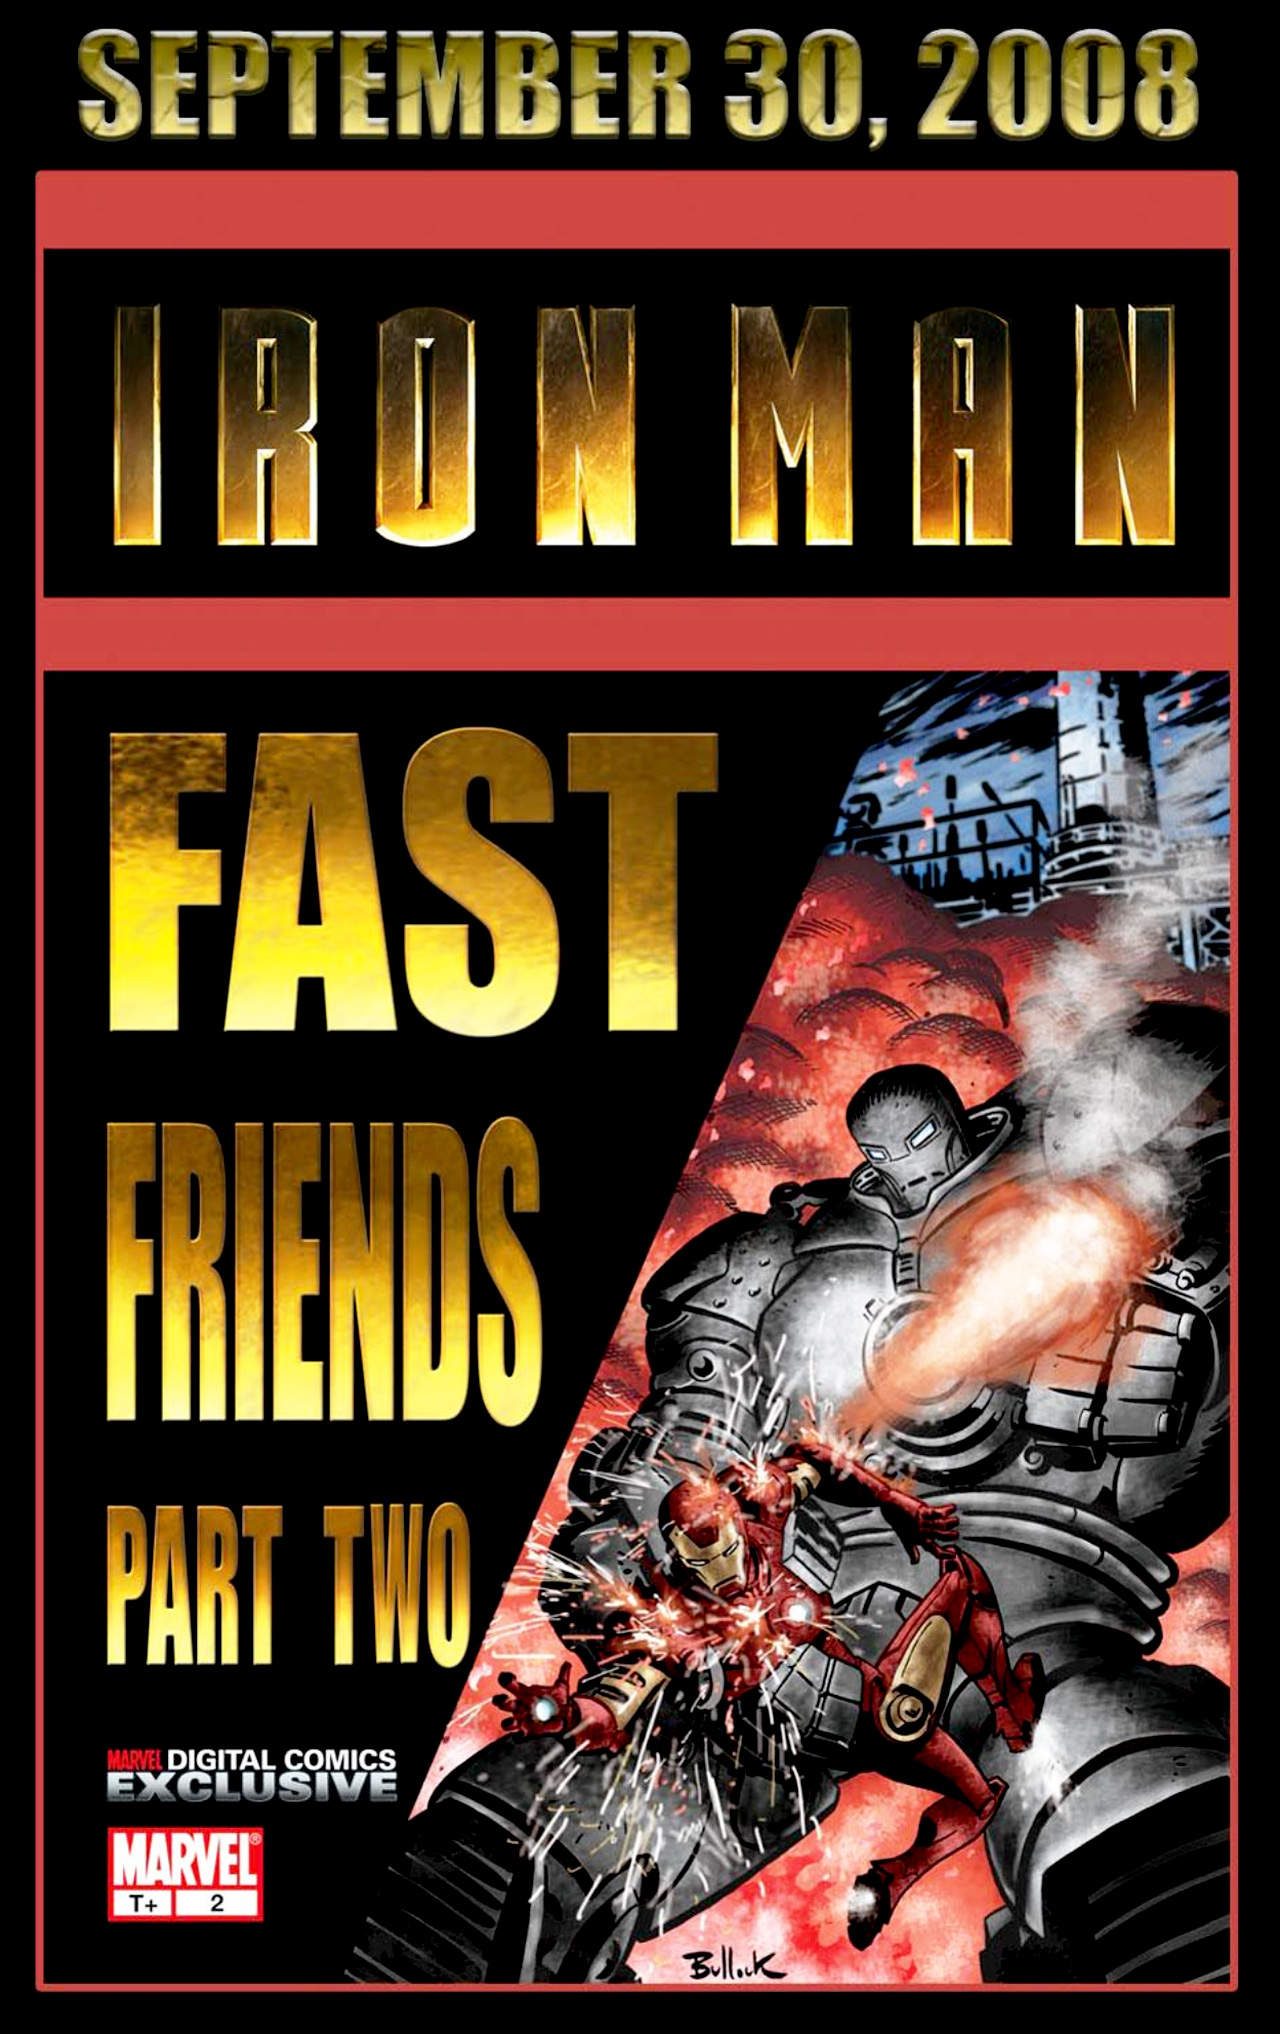 Read online Iron Man: Fast Friends comic -  Issue #1 - 9